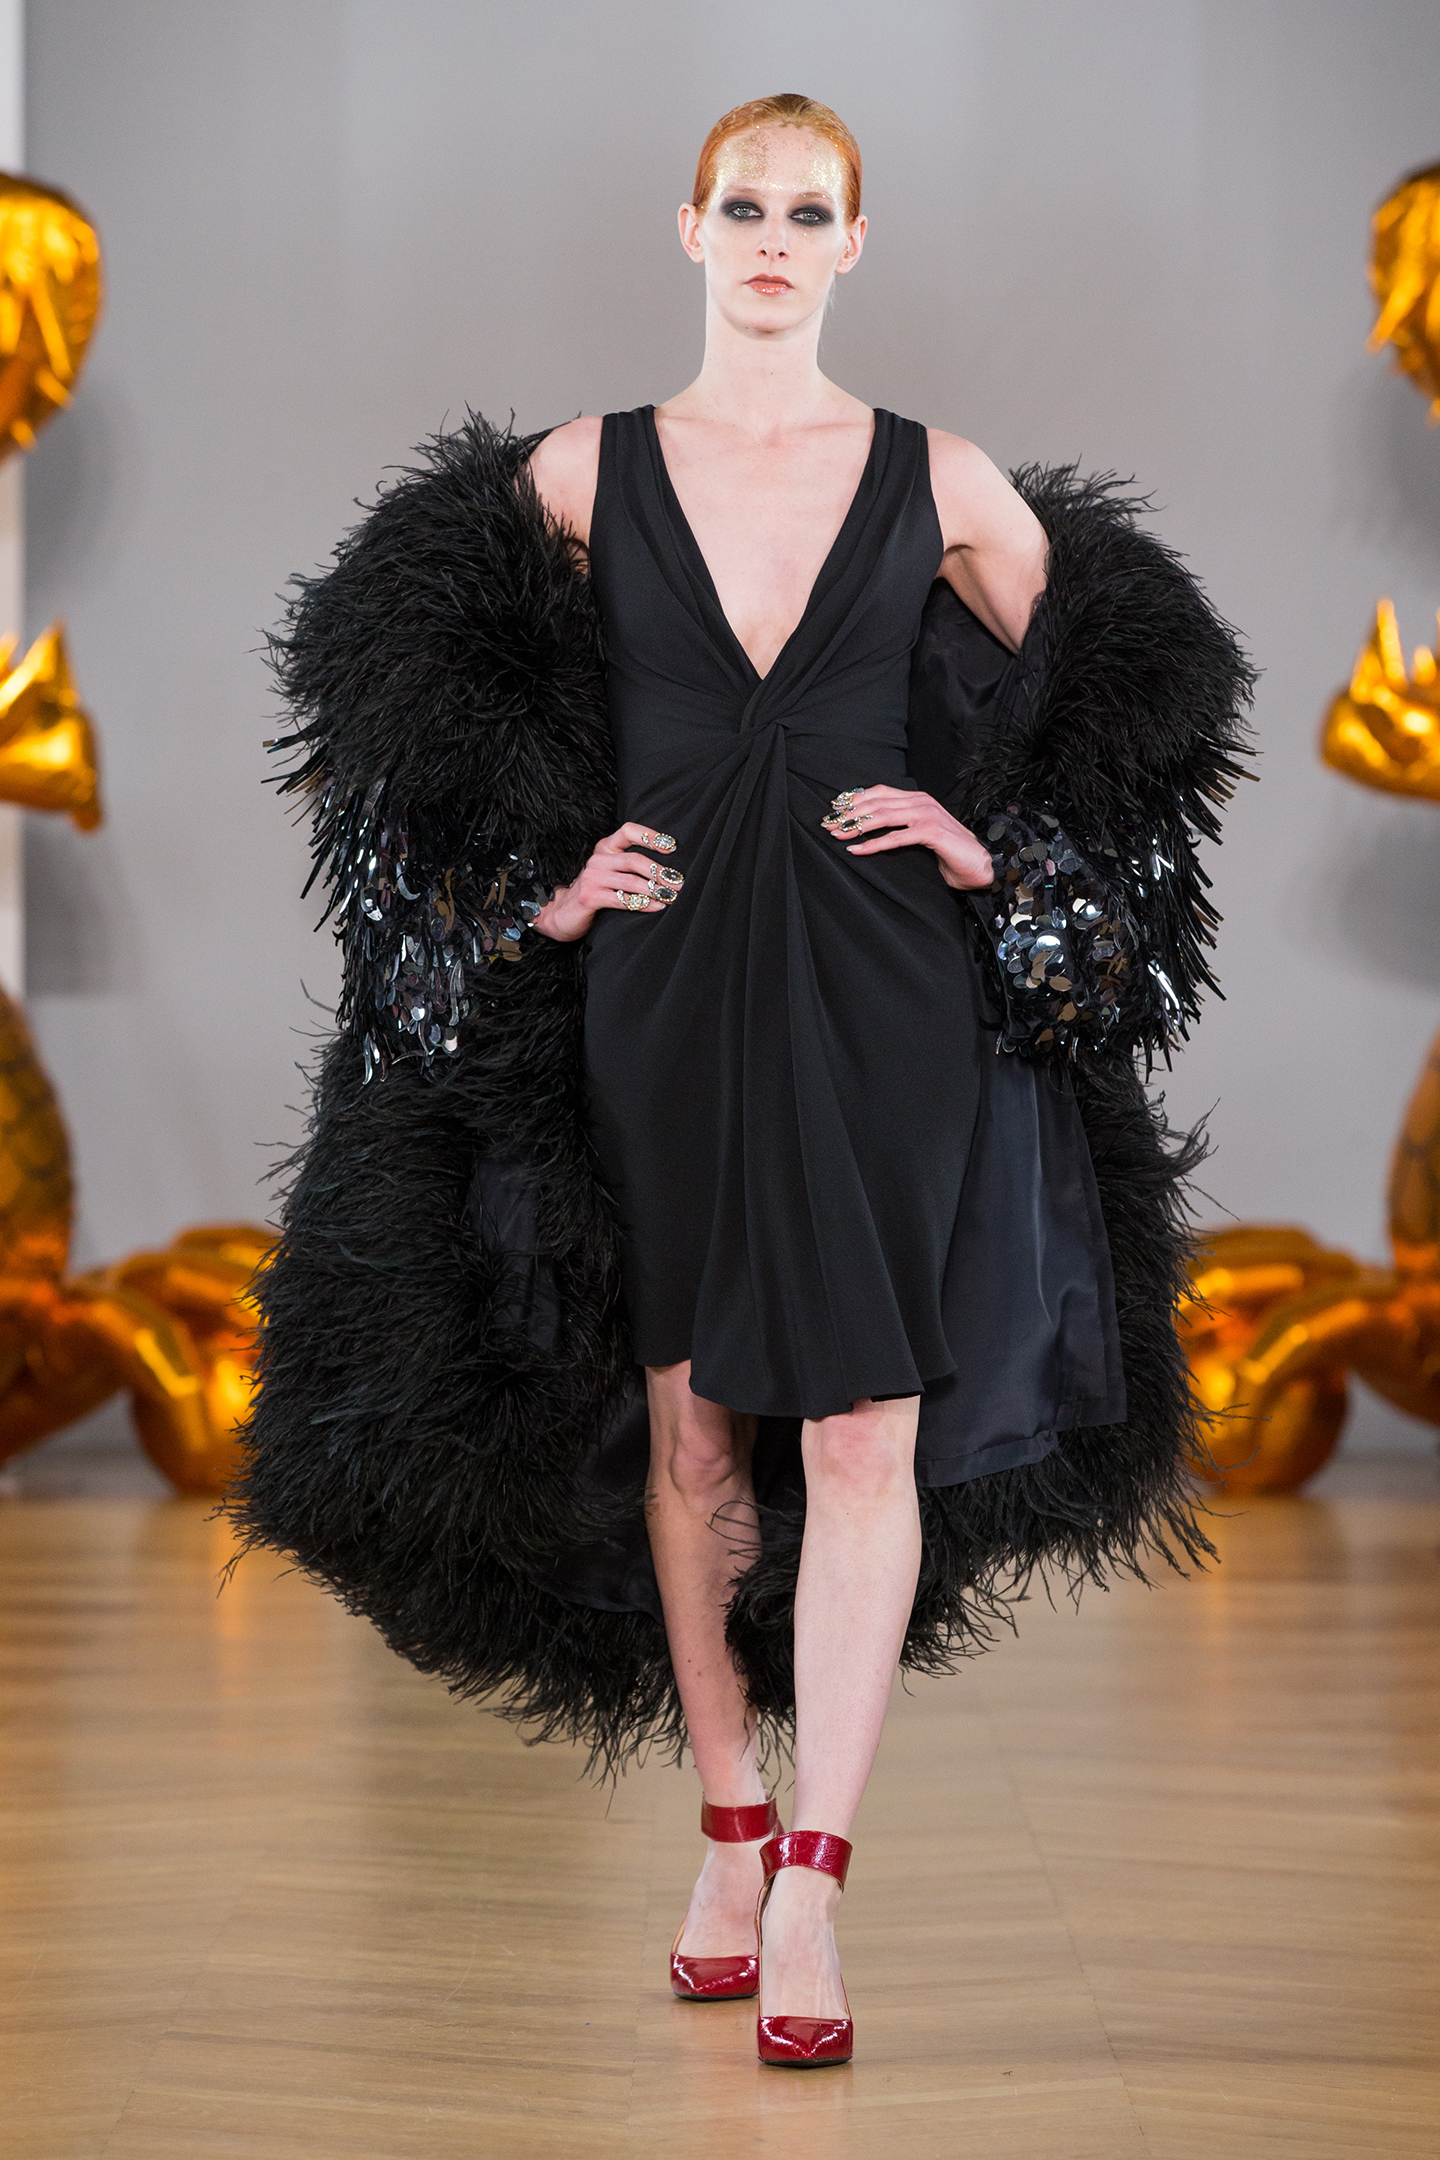 black silk dress and feathers coat by on aura tout vu